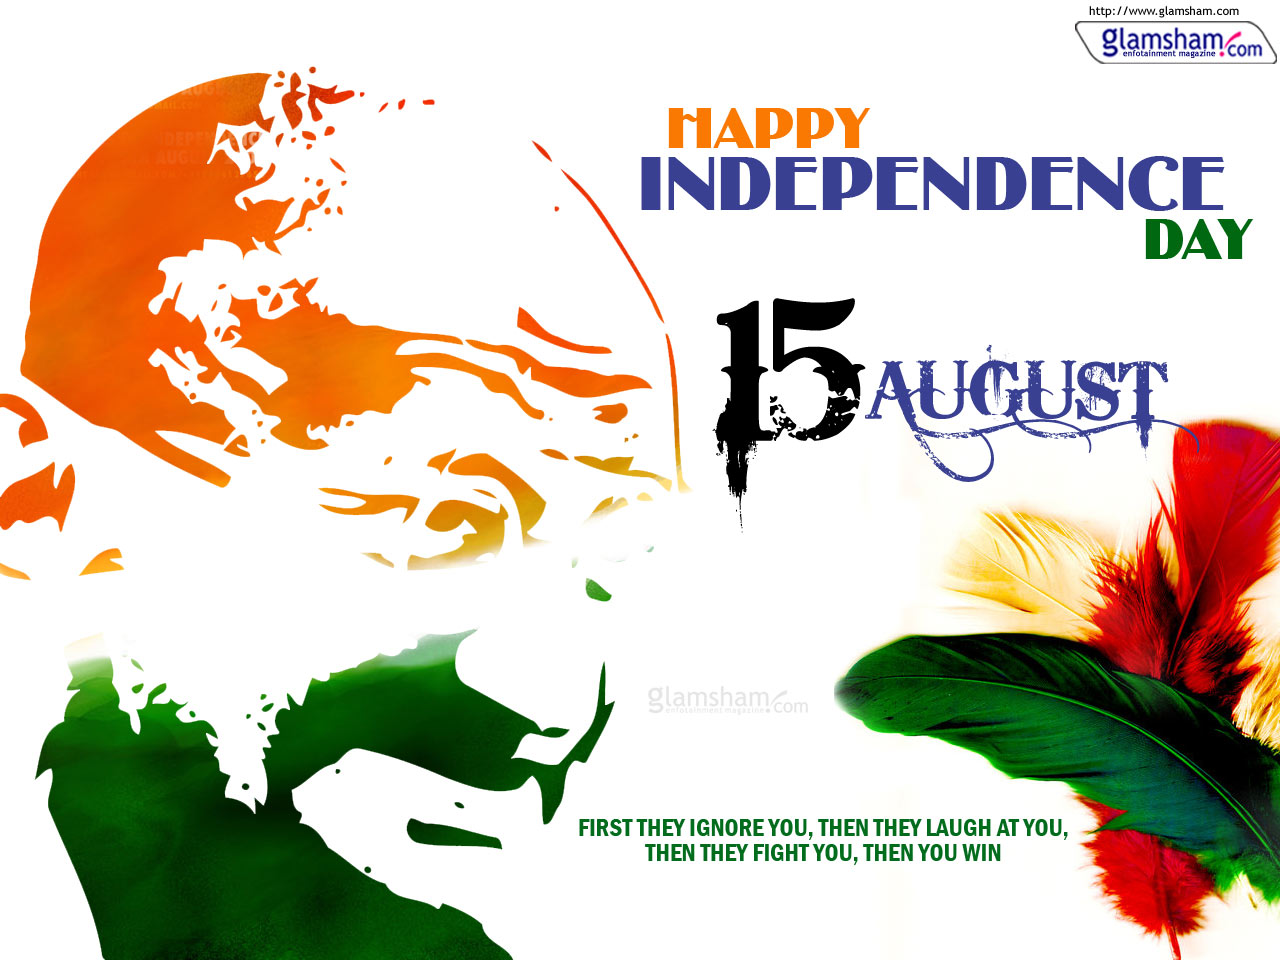 Happy Independence Day Greetings Wallpapers Images And Facebook Covers